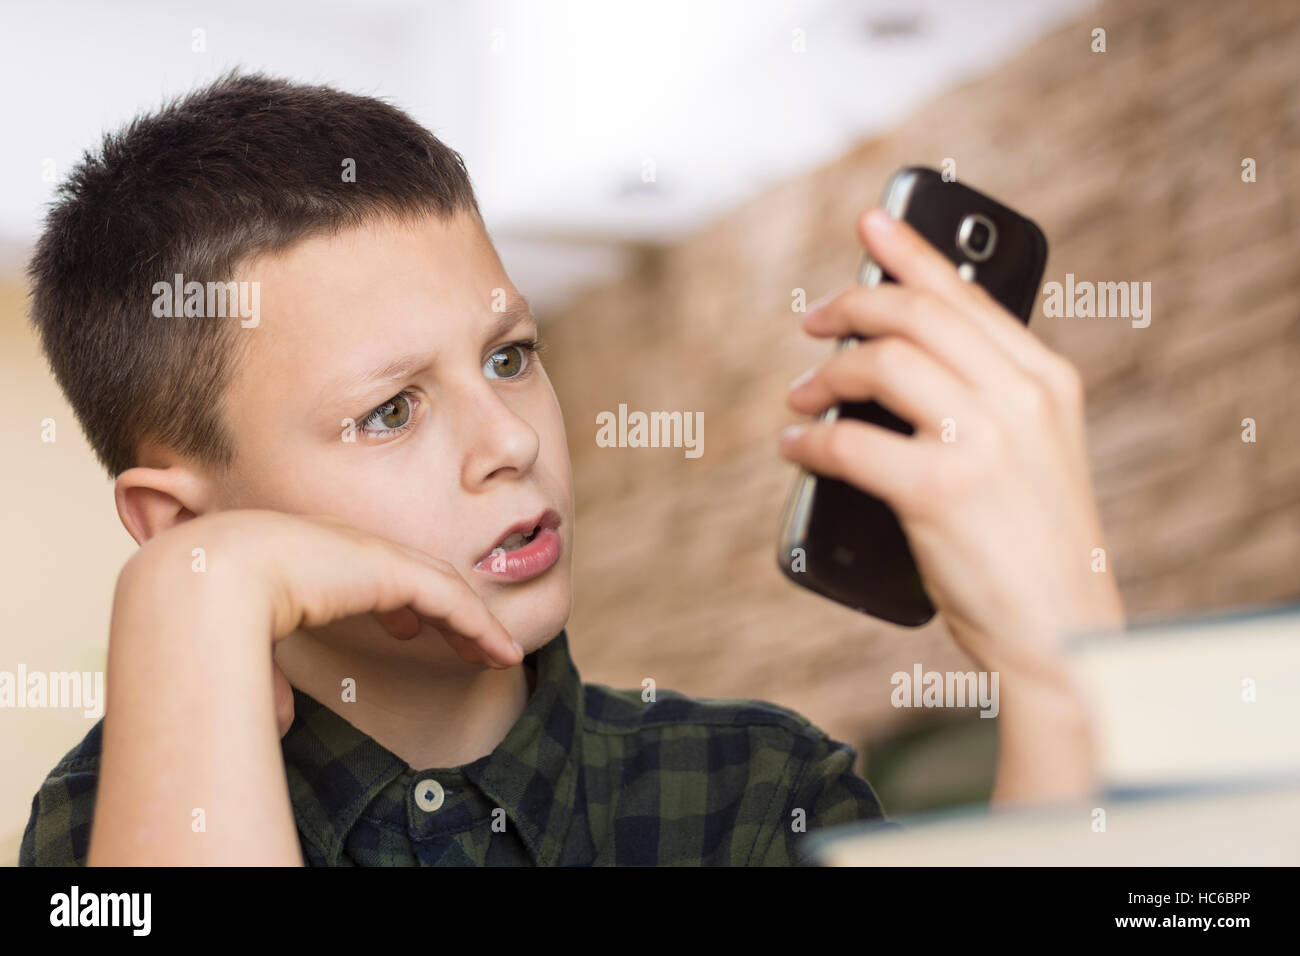 Confused Boy Looking at His Smart Phone. Mobile Phone Talk Concept. - Stock Image